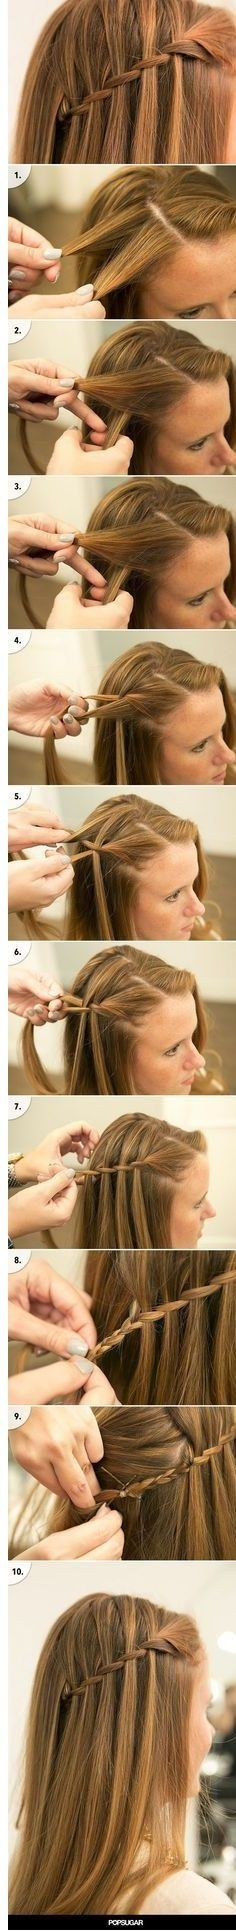 EASY 5 MINUTES FAST HAIR STYLE IDEAS FOR OCCUPIED WOMEN